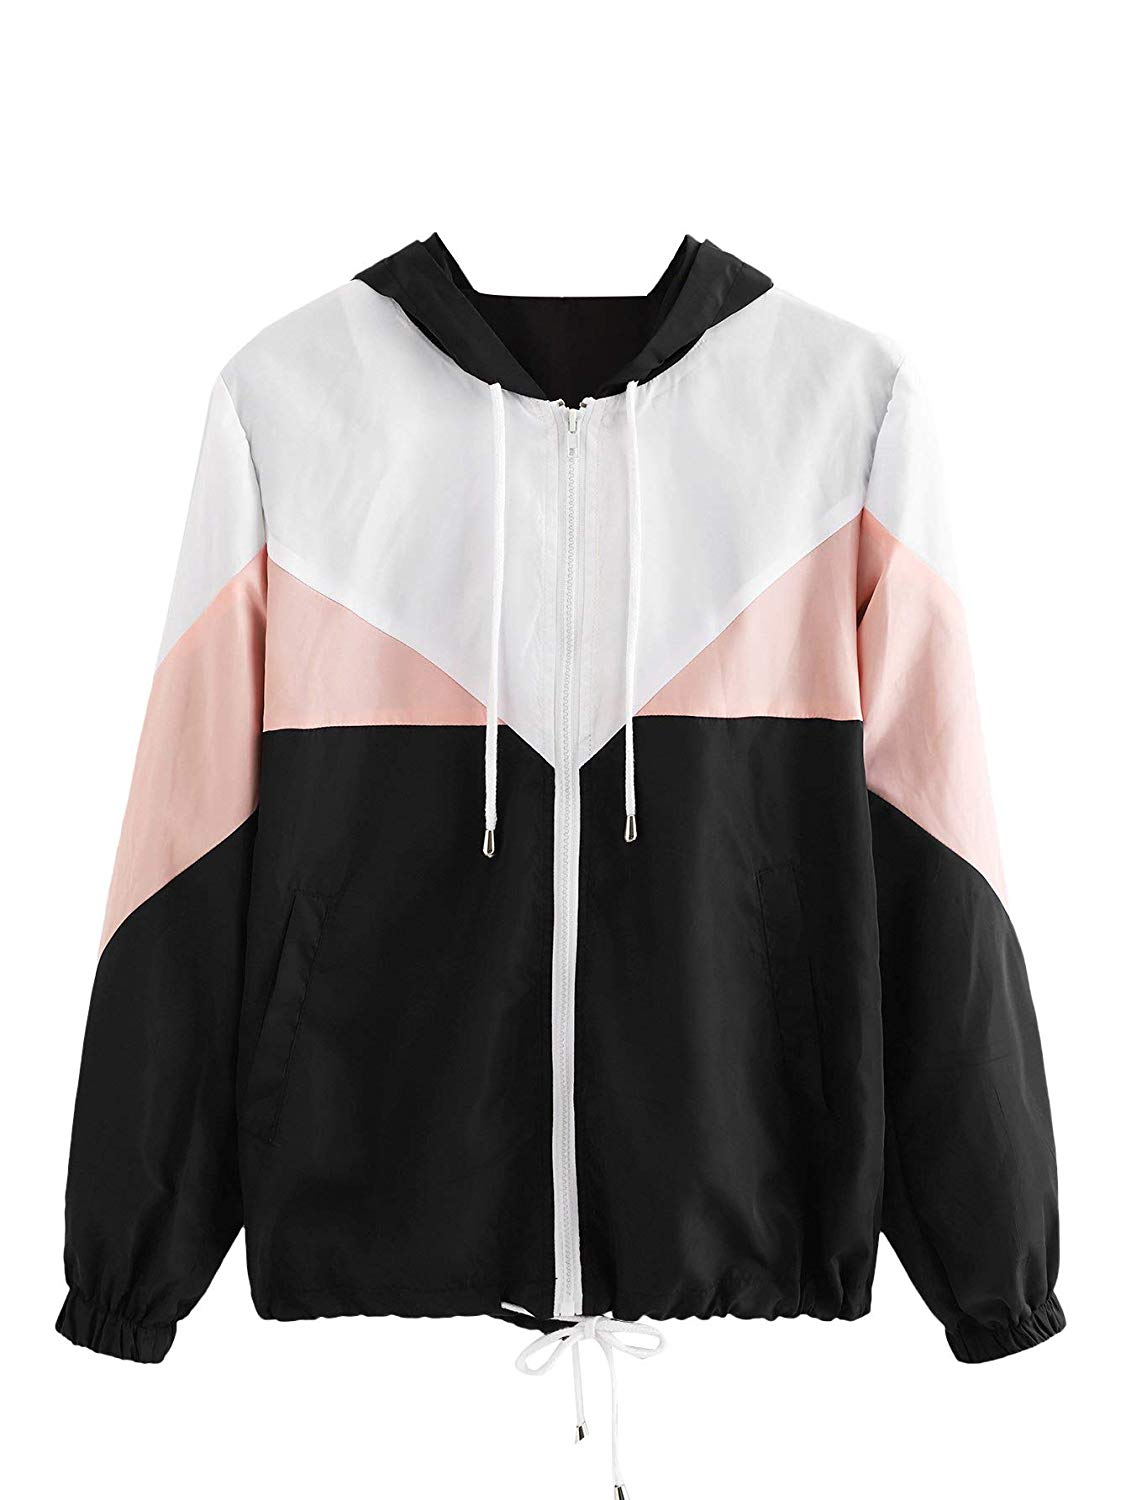 Milumia  — Women's Color Block Drawstring Hooded Zip Up Sports Jacket Windbreaker —  $20.99